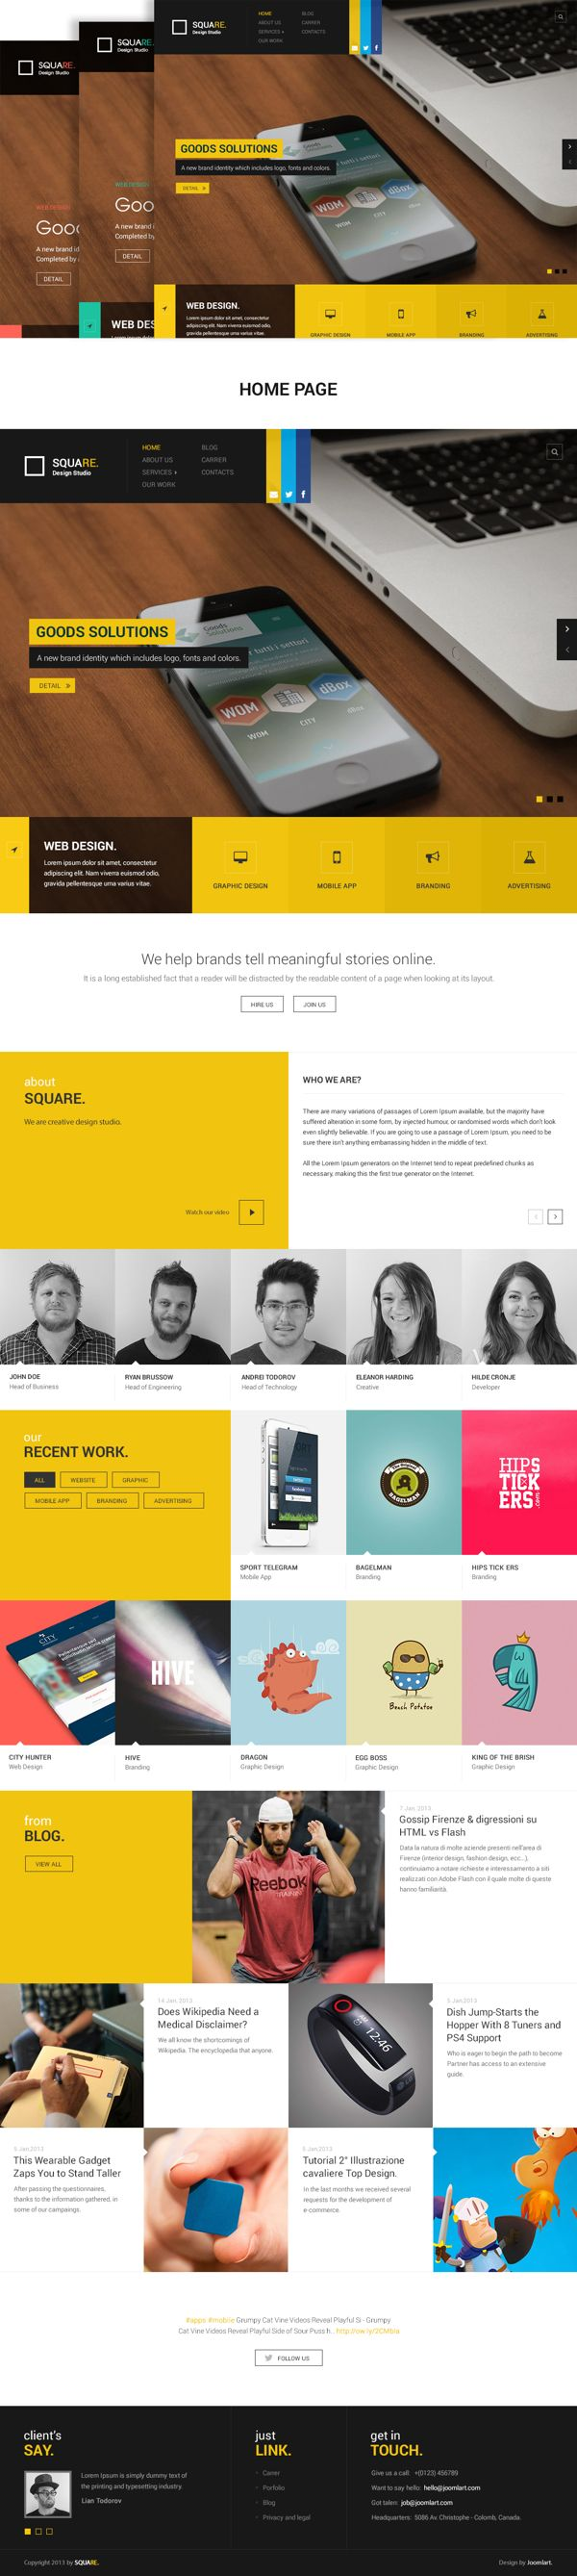 Web Portfolio by minh tho, via Behance